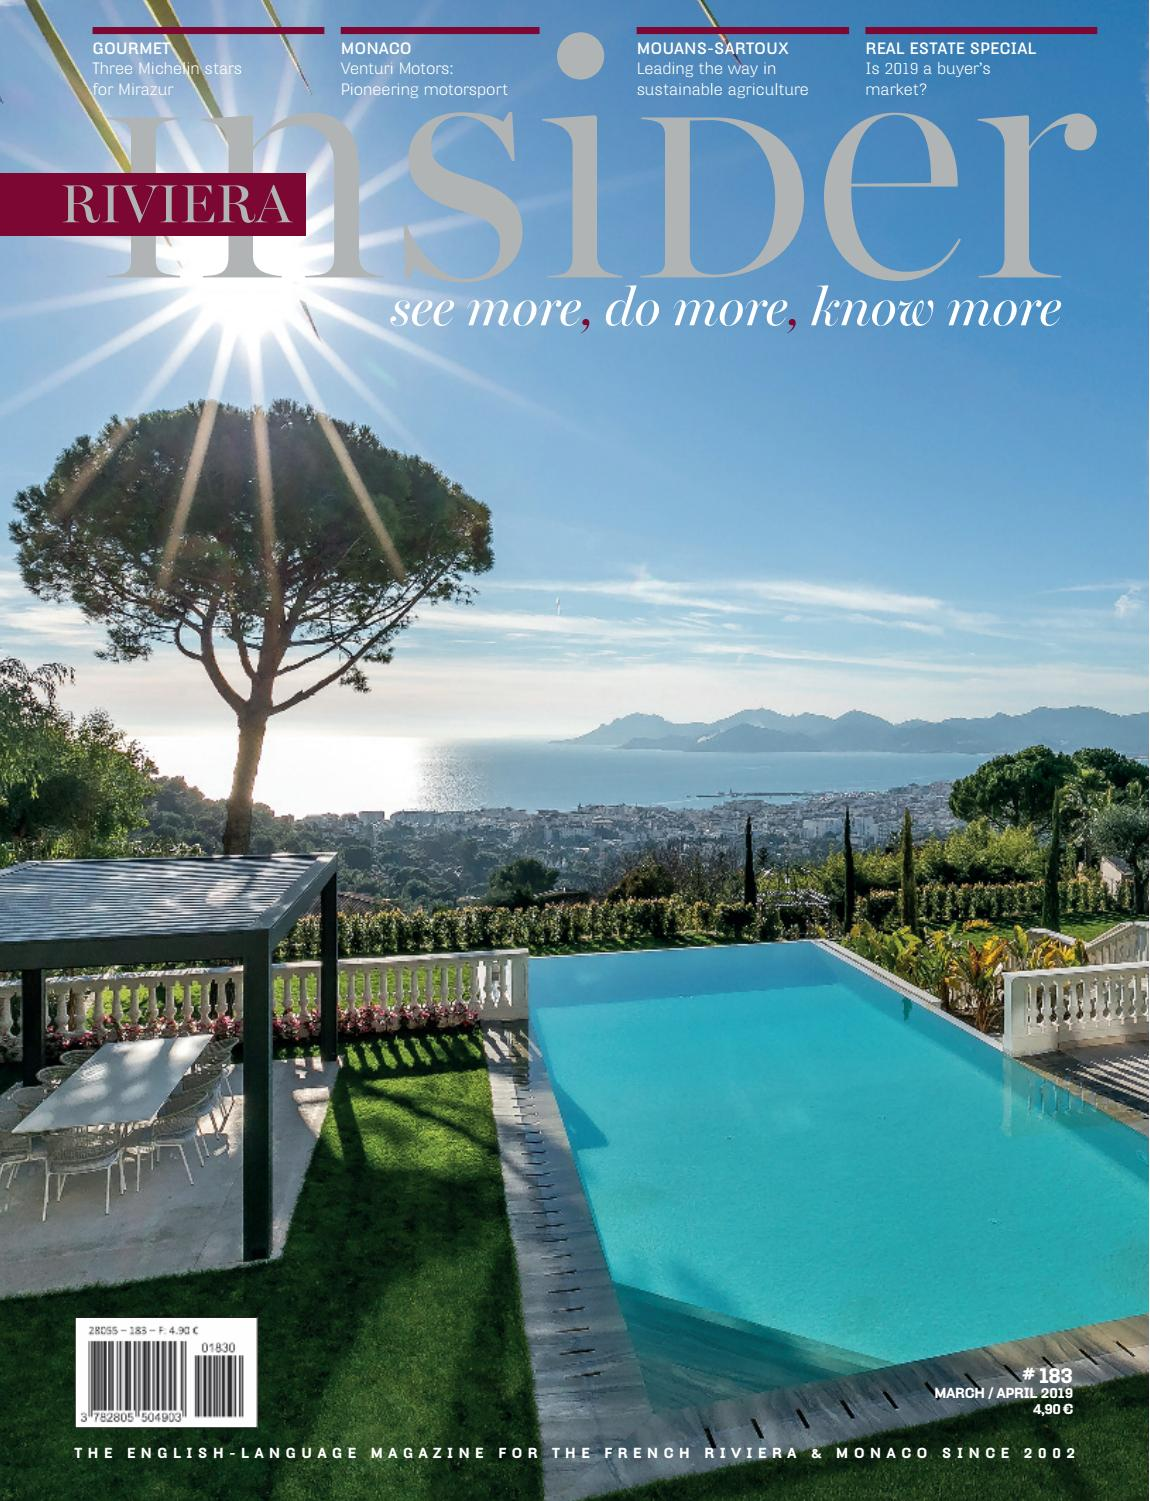 Euromaster Salon De Provence Riviera Insider March April 2019 By Riviera Press Issuu